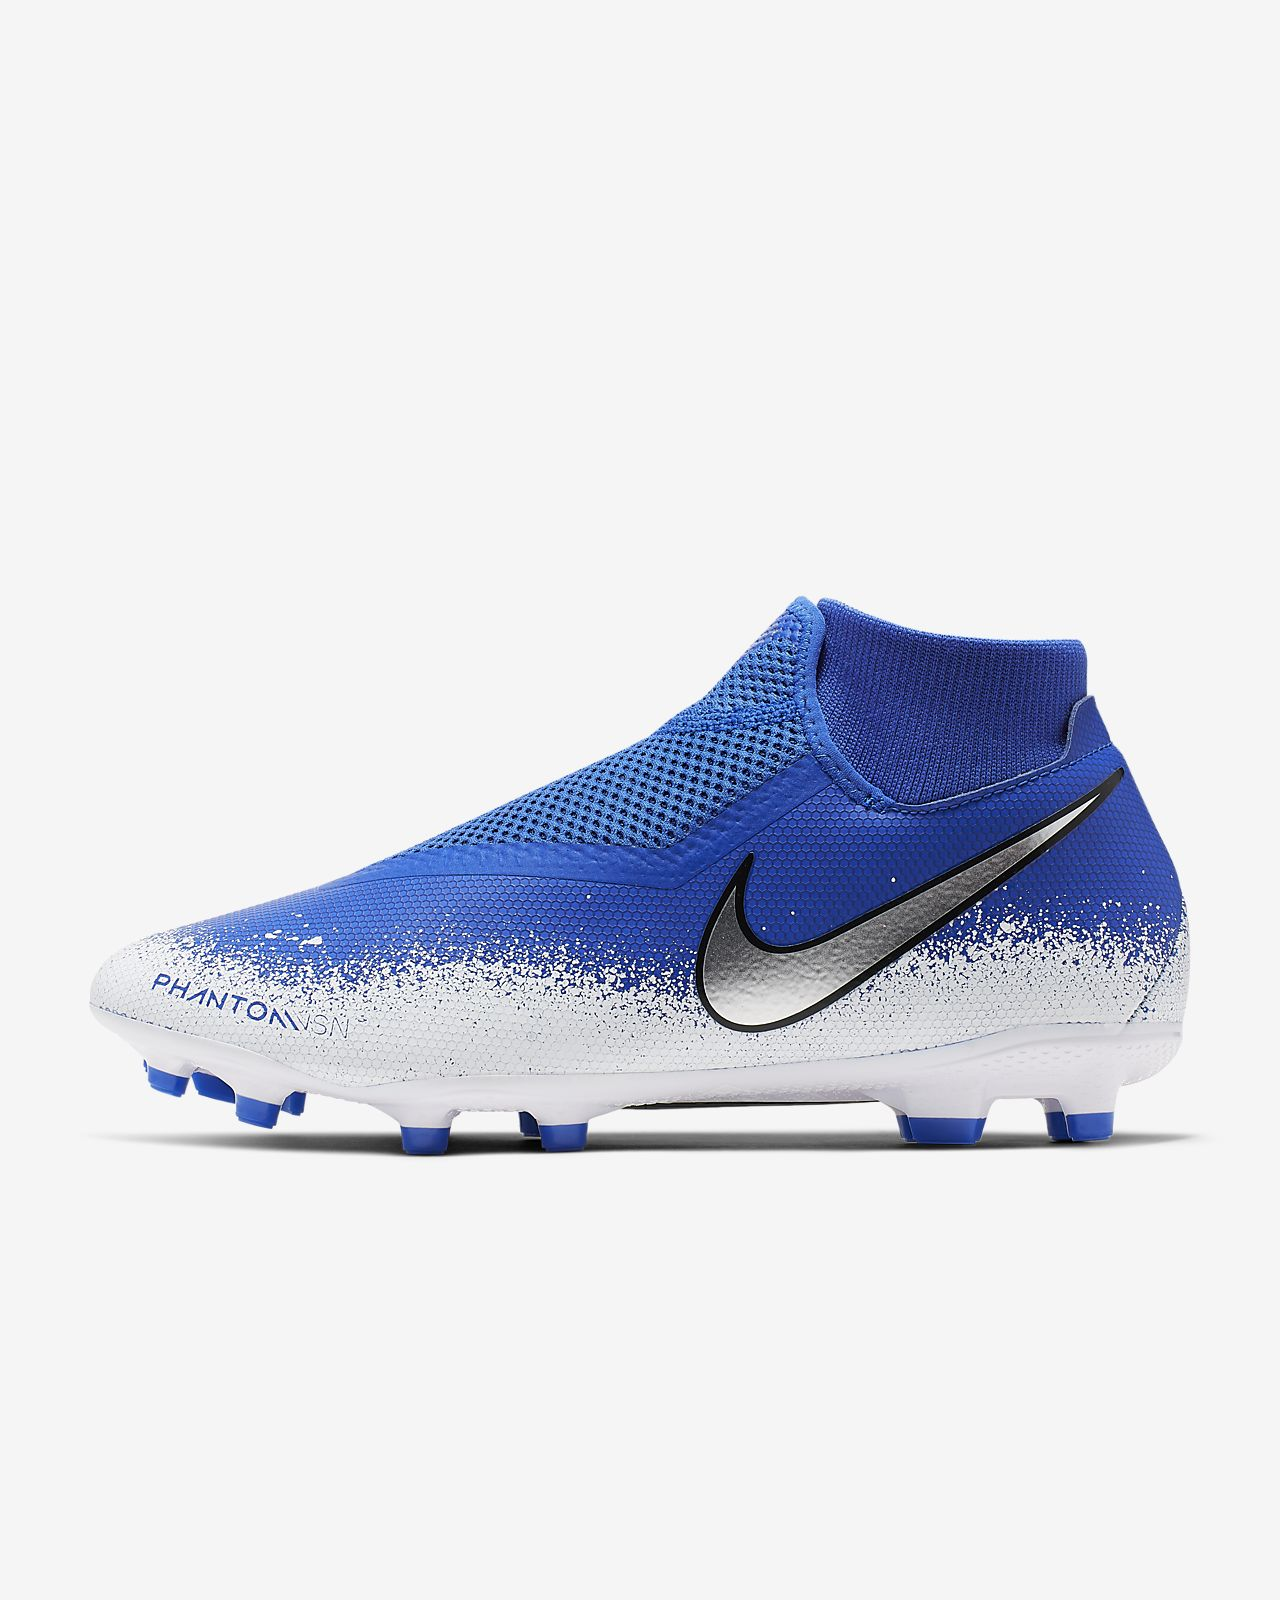 sale retailer 03320 65952 Nike Phantom Vision Academy Dynamic Fit MG